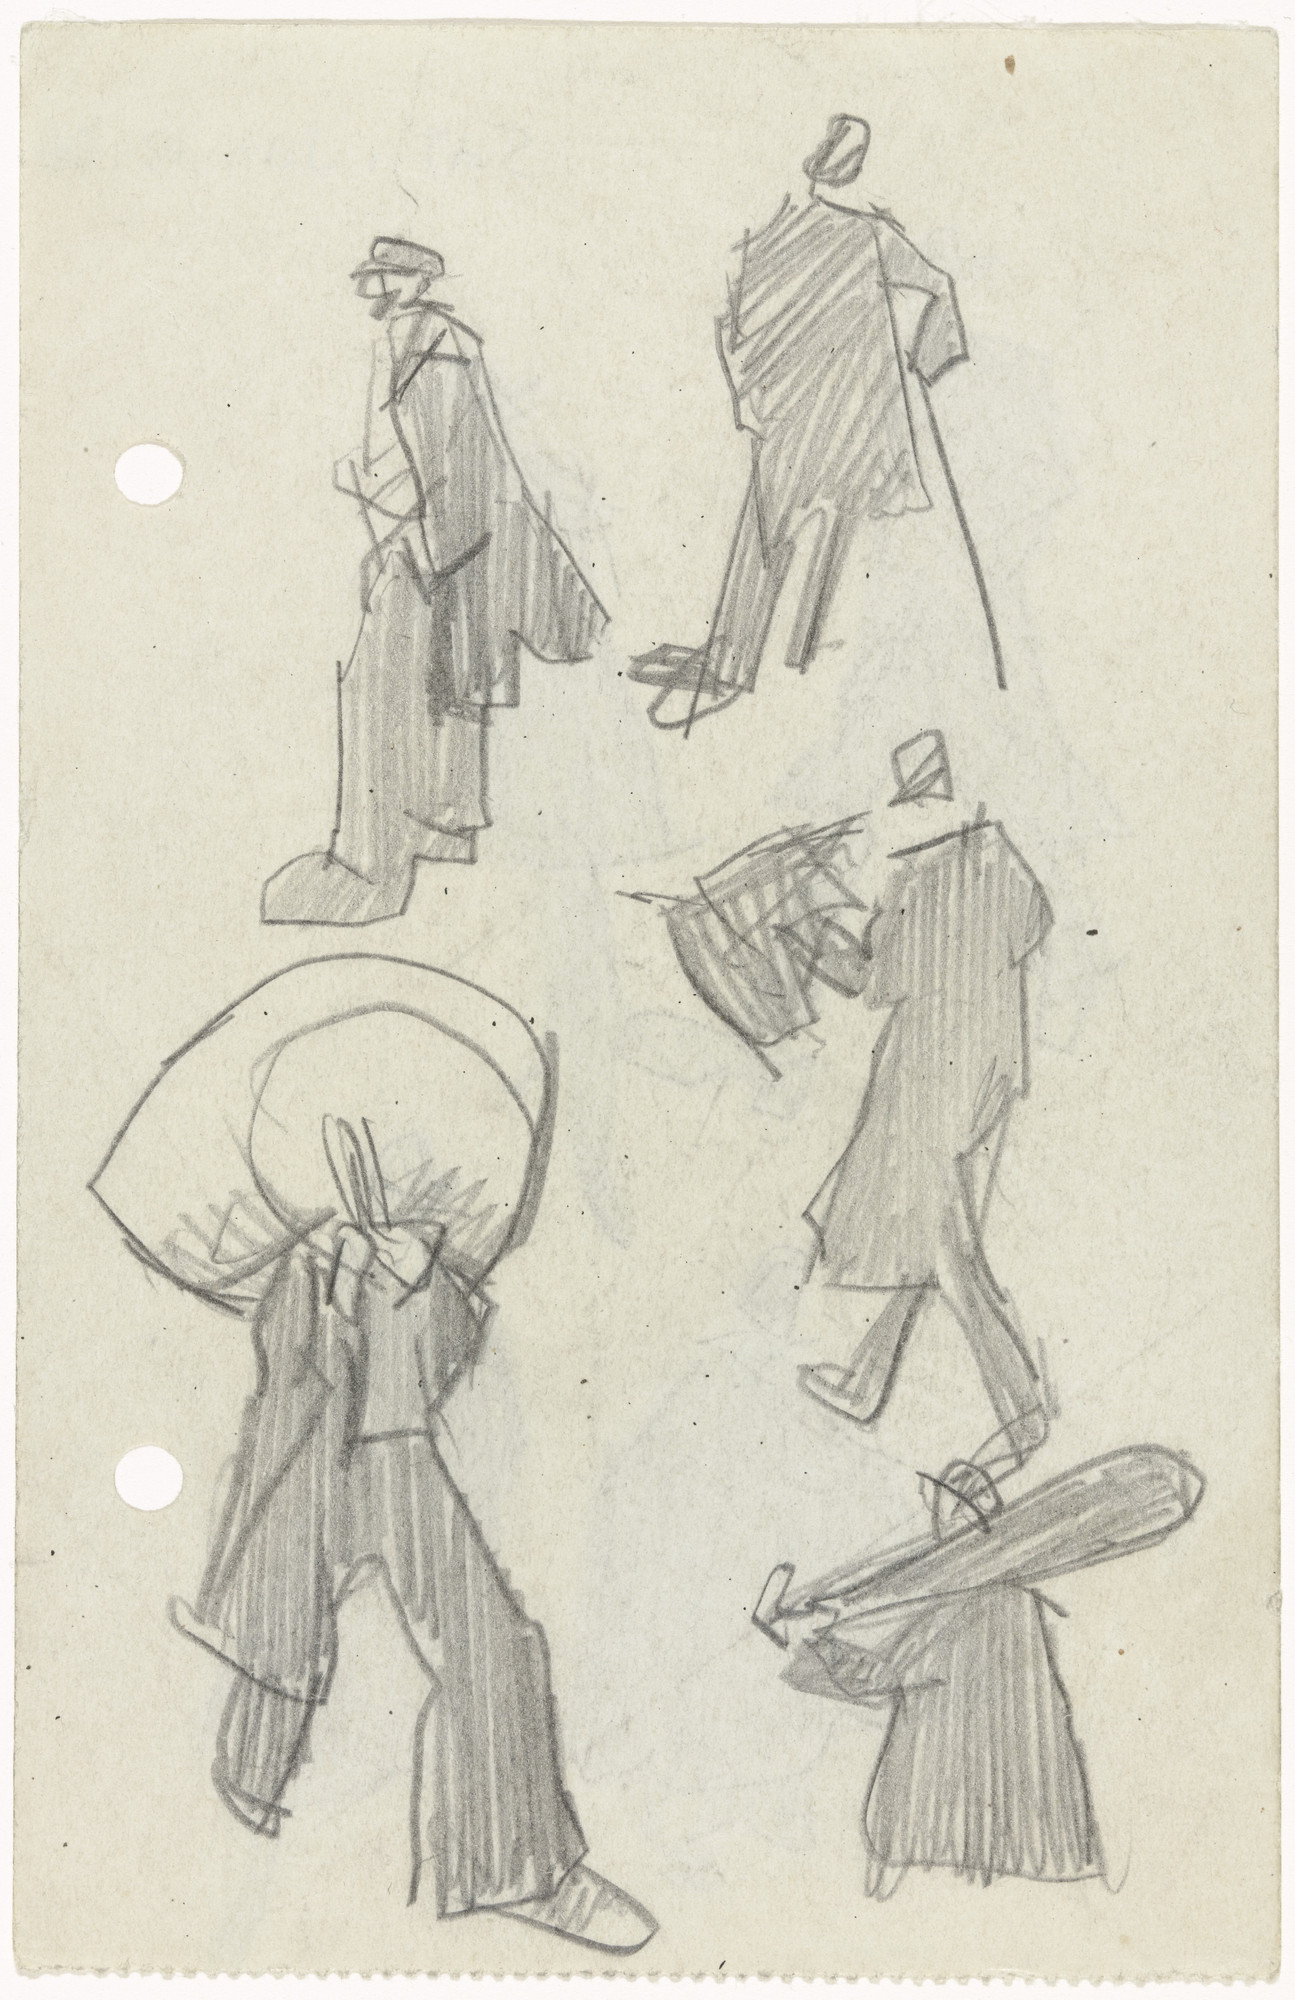 Lyonel Feininger. Five Figures. (1906)